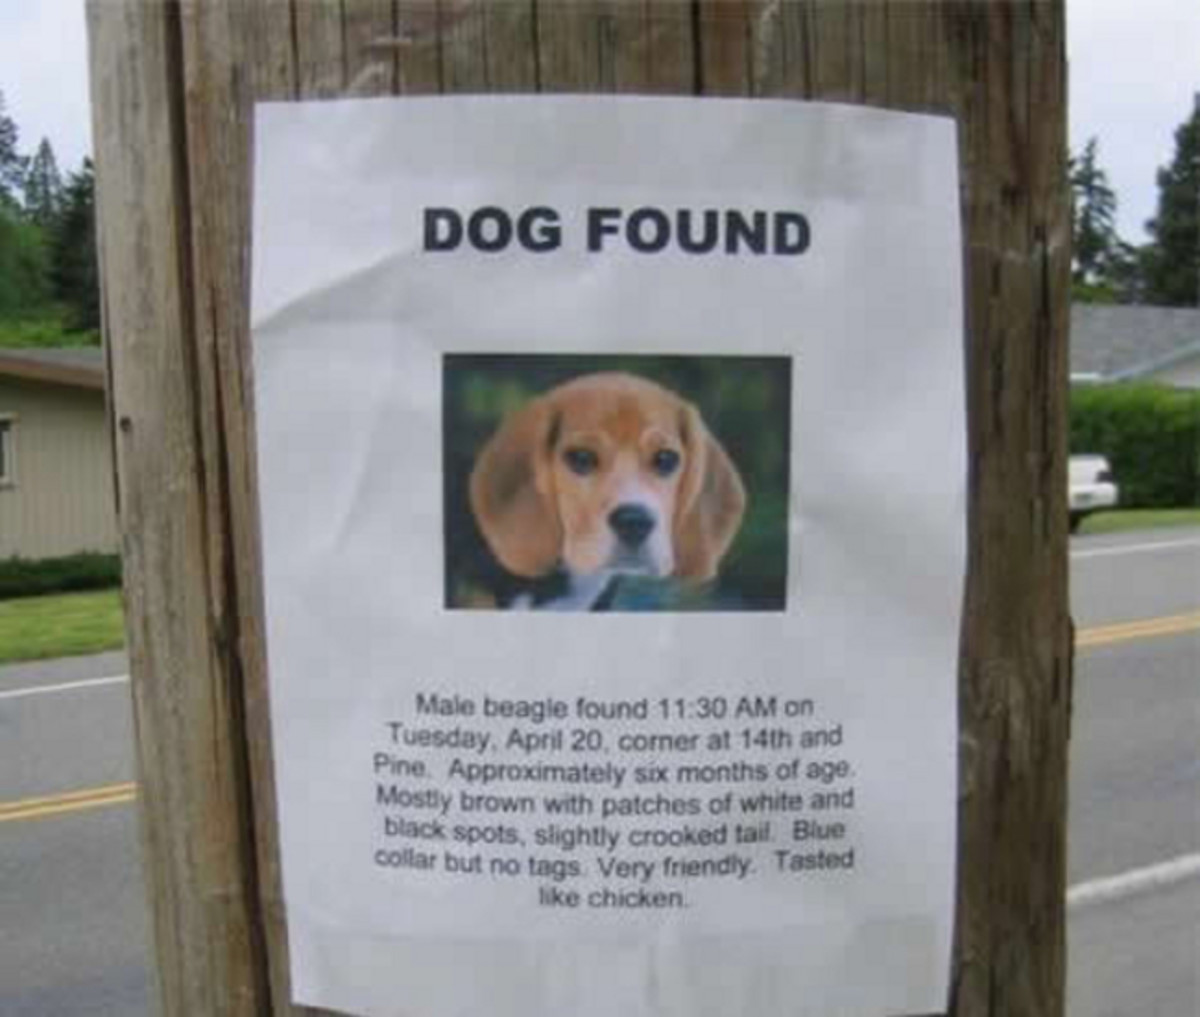 This sign says the missing beagle tasted like chicken